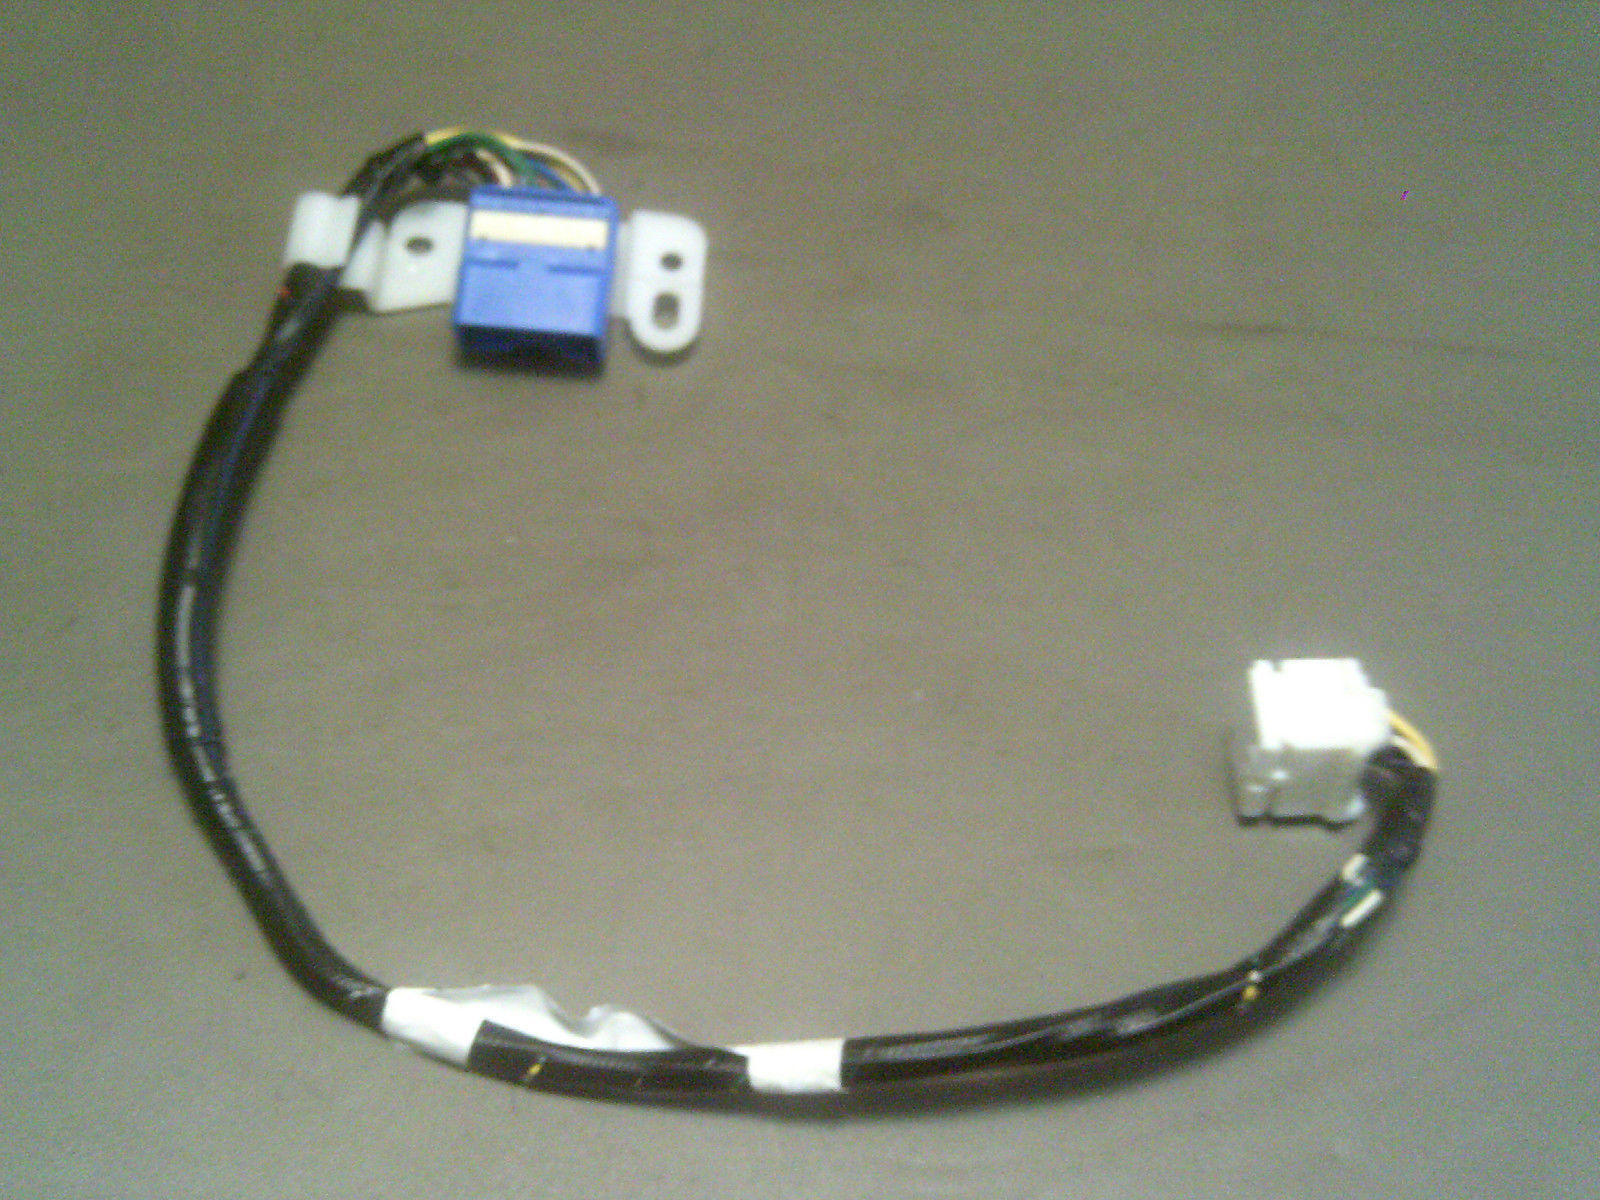 Primary image for 07 Camry LH - Drivers Side Front Door Power Lock - Wndow Switch Wiring Harness